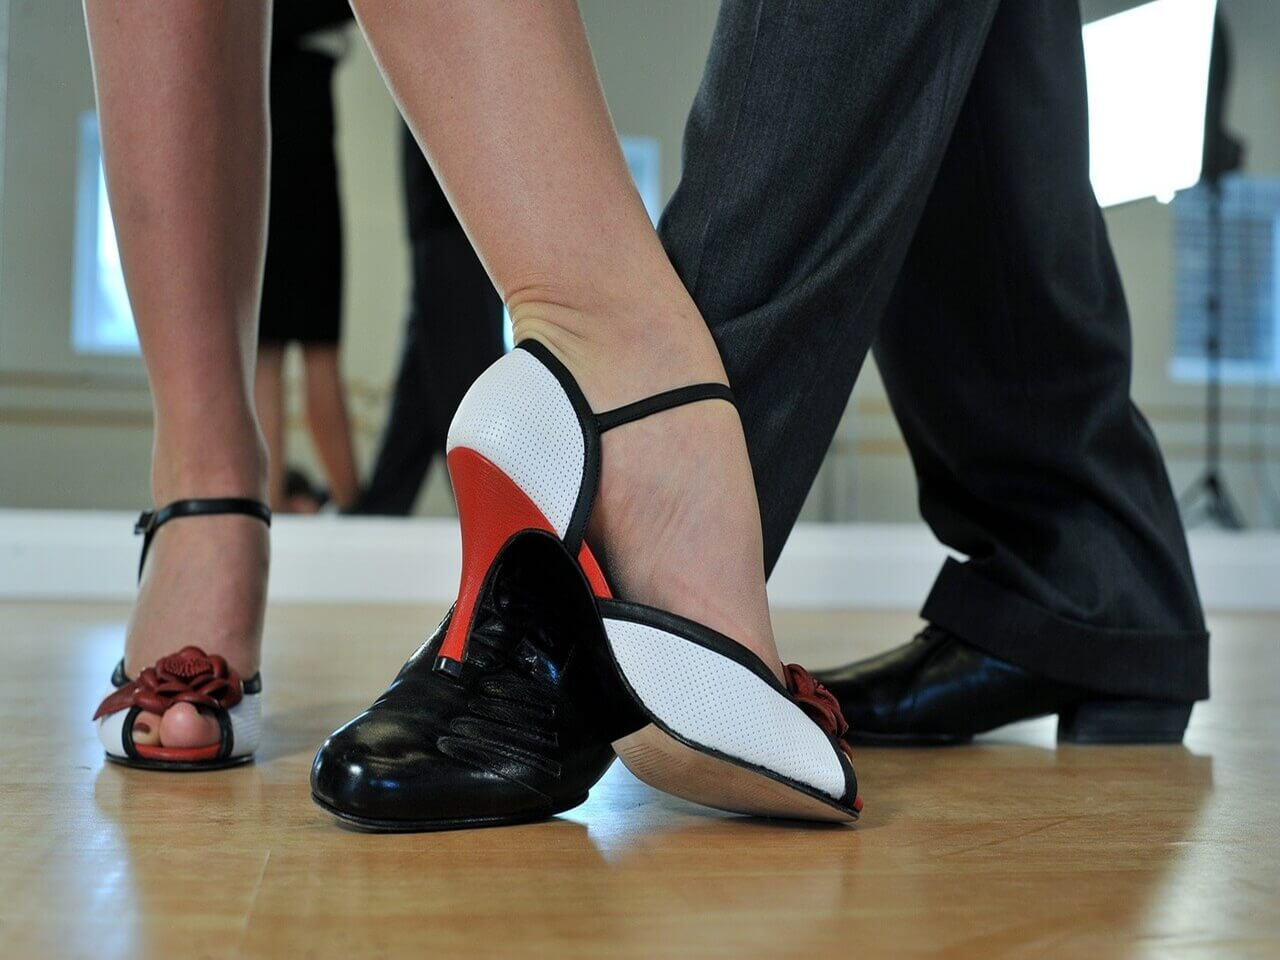 Tango Therapy